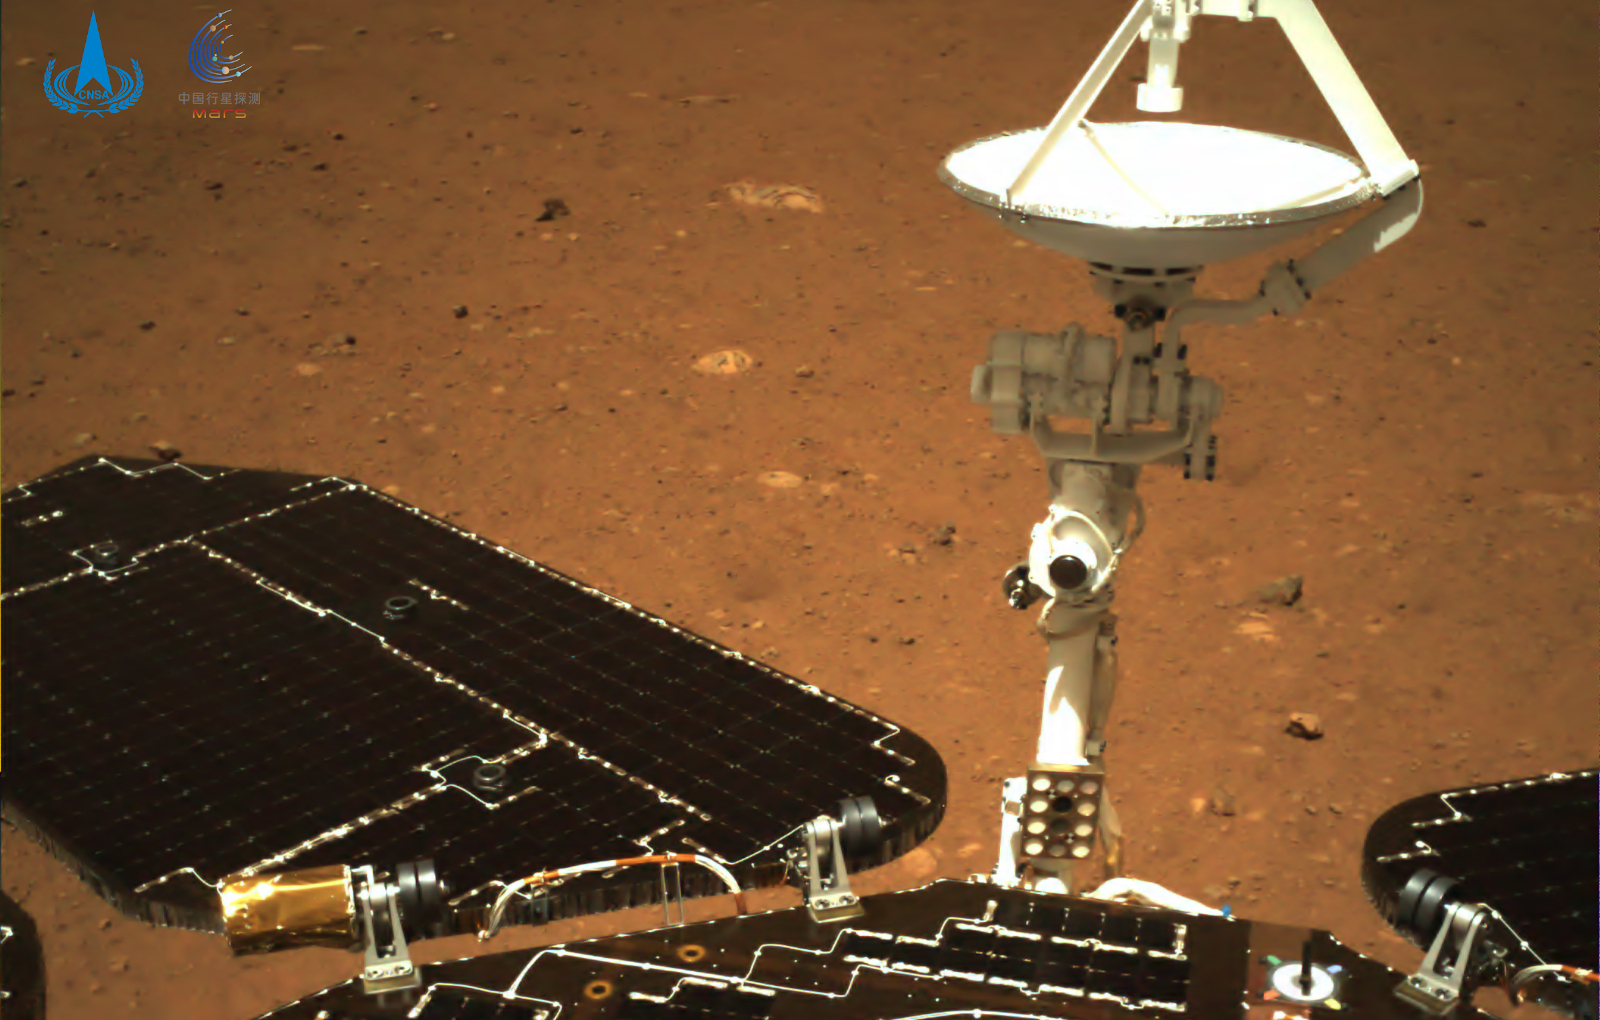 China reveals first Mars photos taken by the Zhurong rover – Yahoo Finance Australia